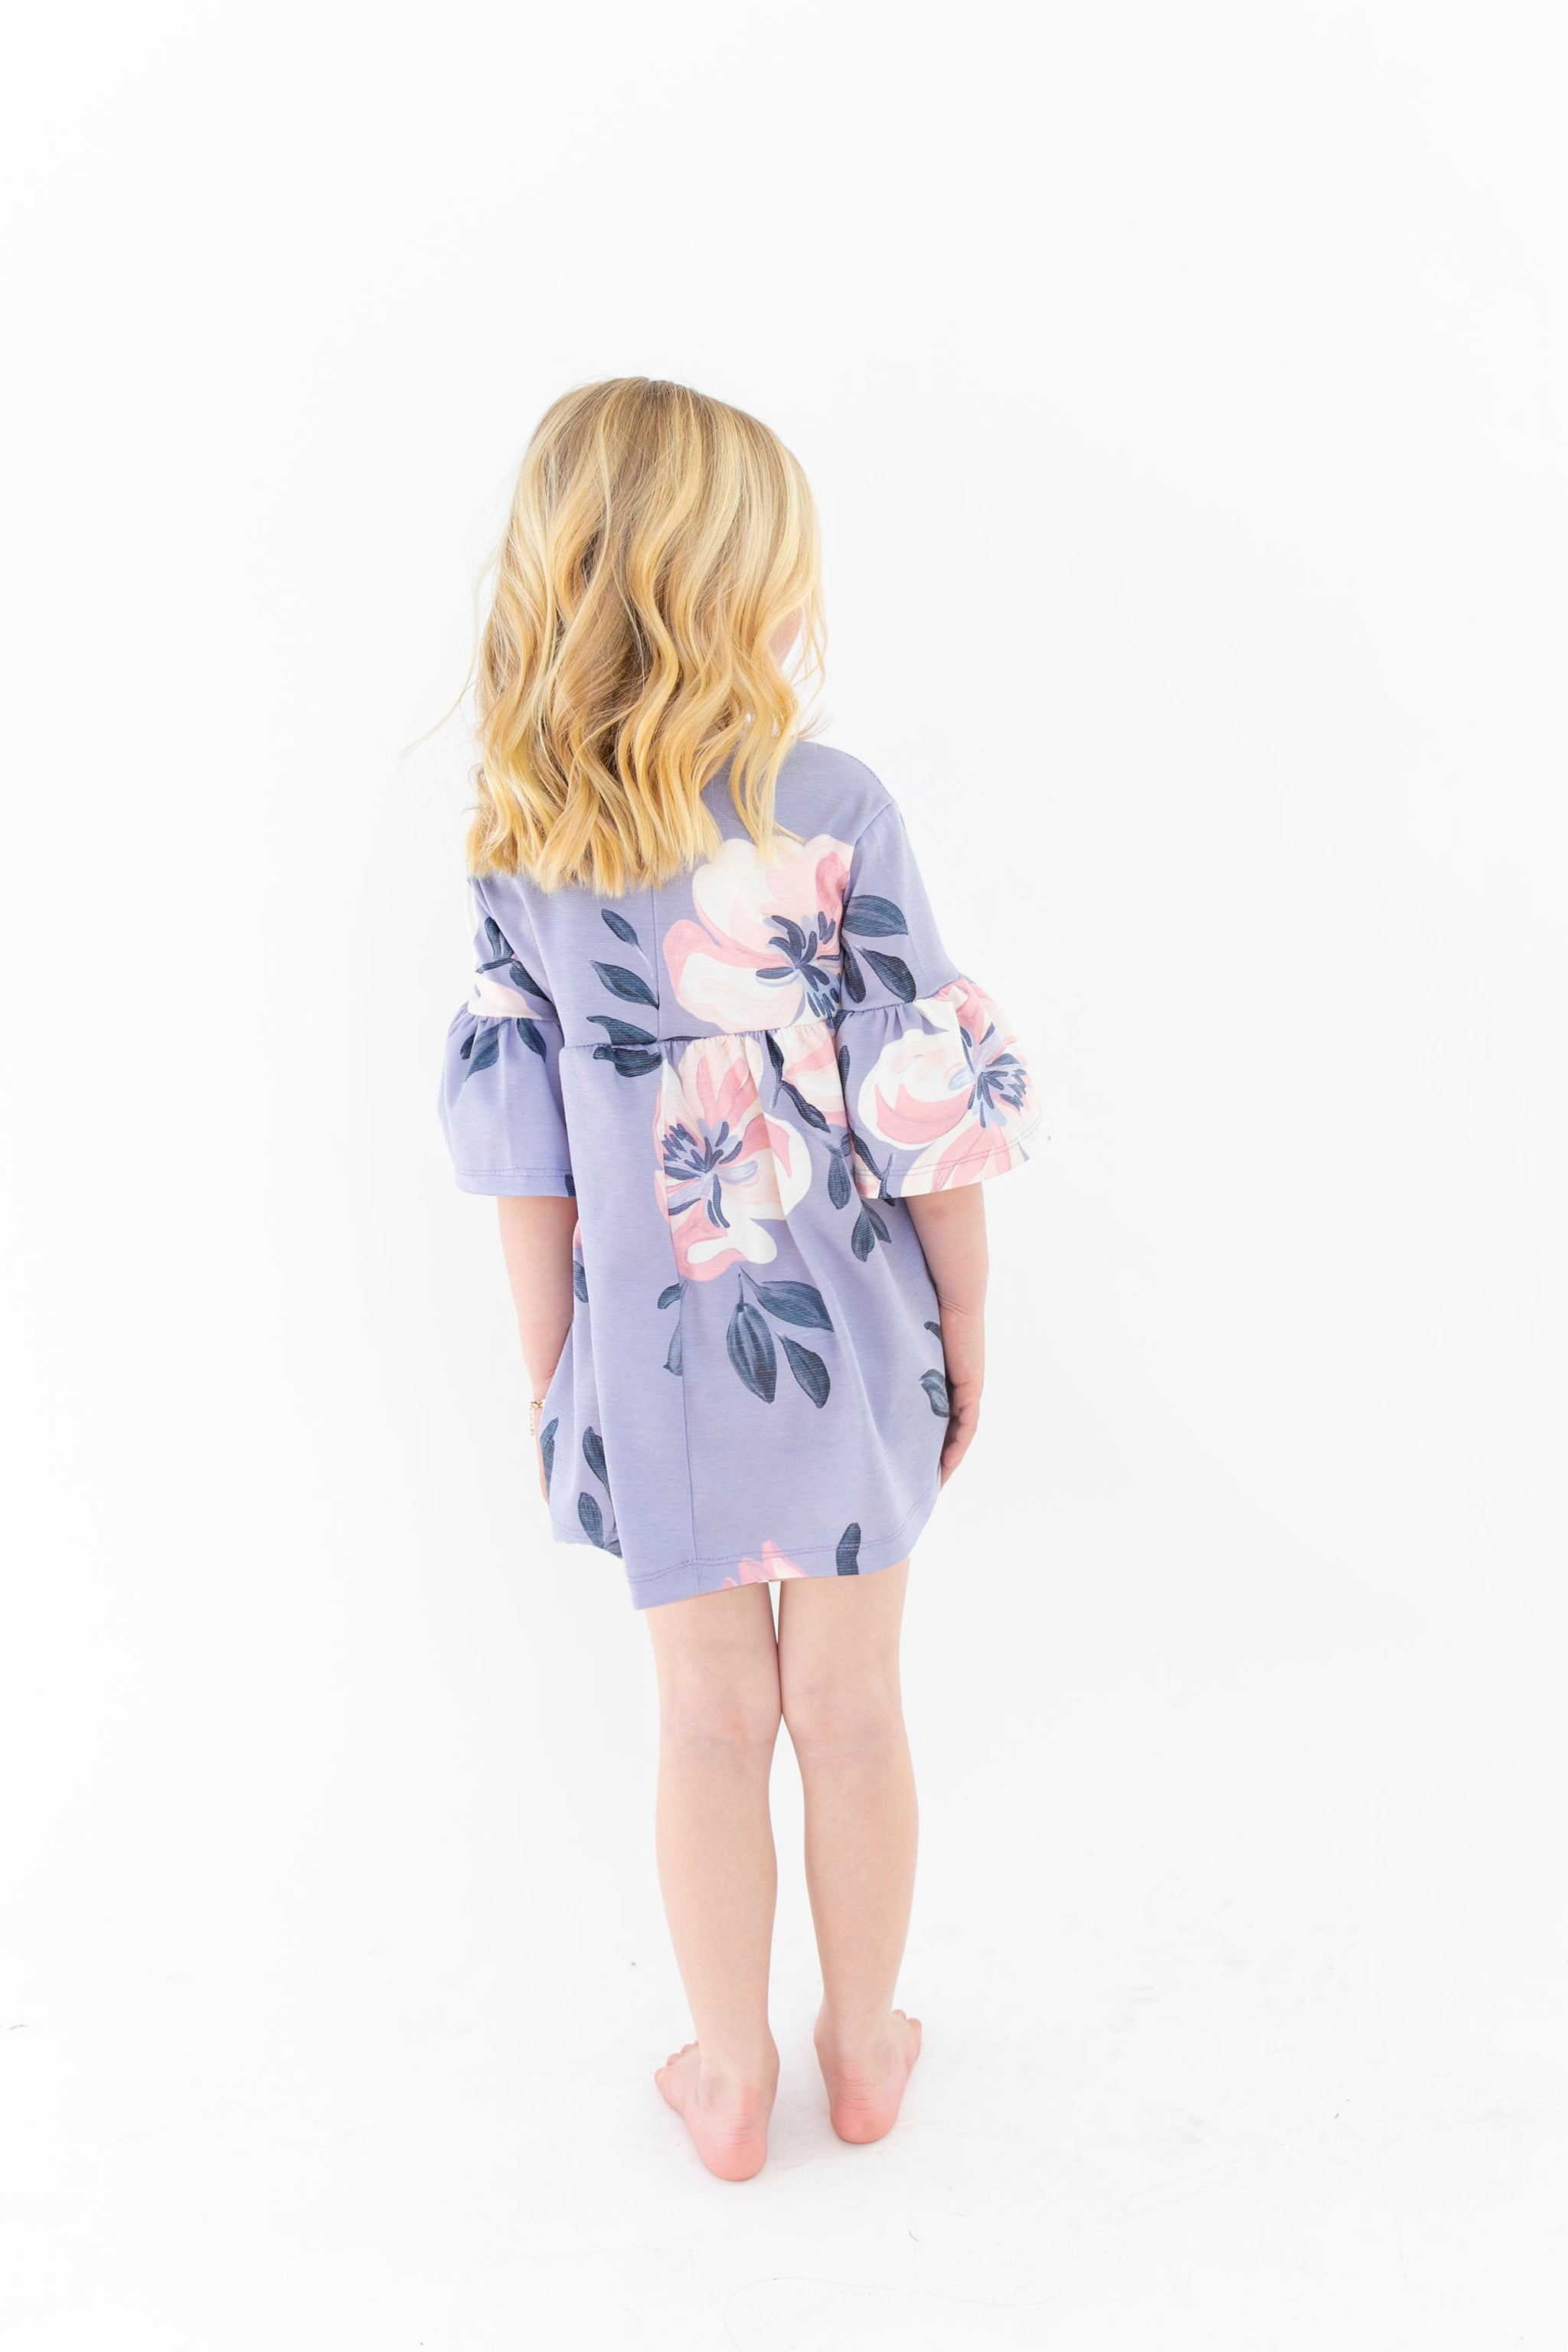 MINI - Caitlin Wilson Floral - Ruffle Bell Dress